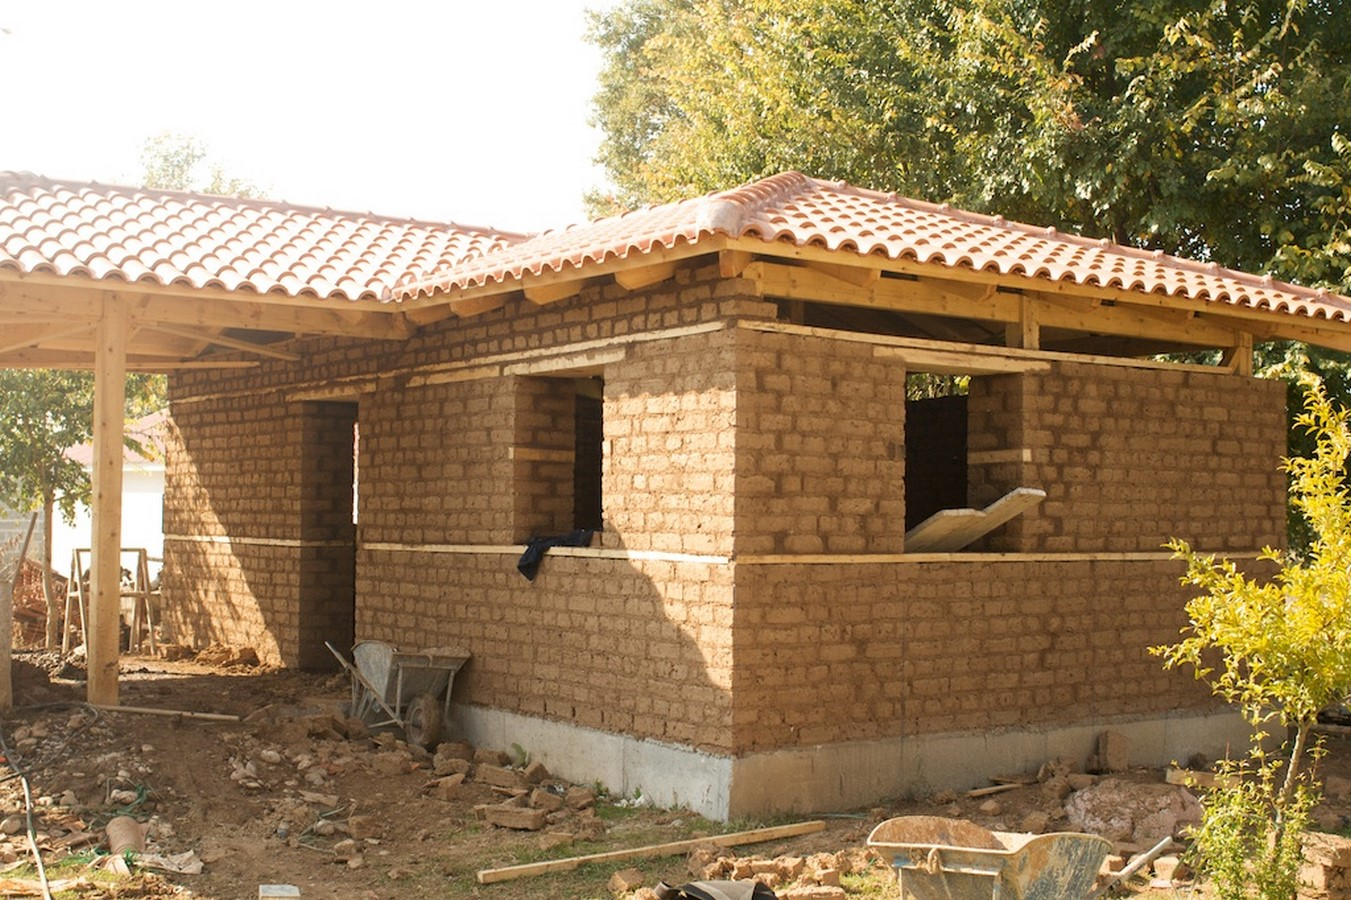 Sustainable construction techniques used in vernacular architecture - Sheet8